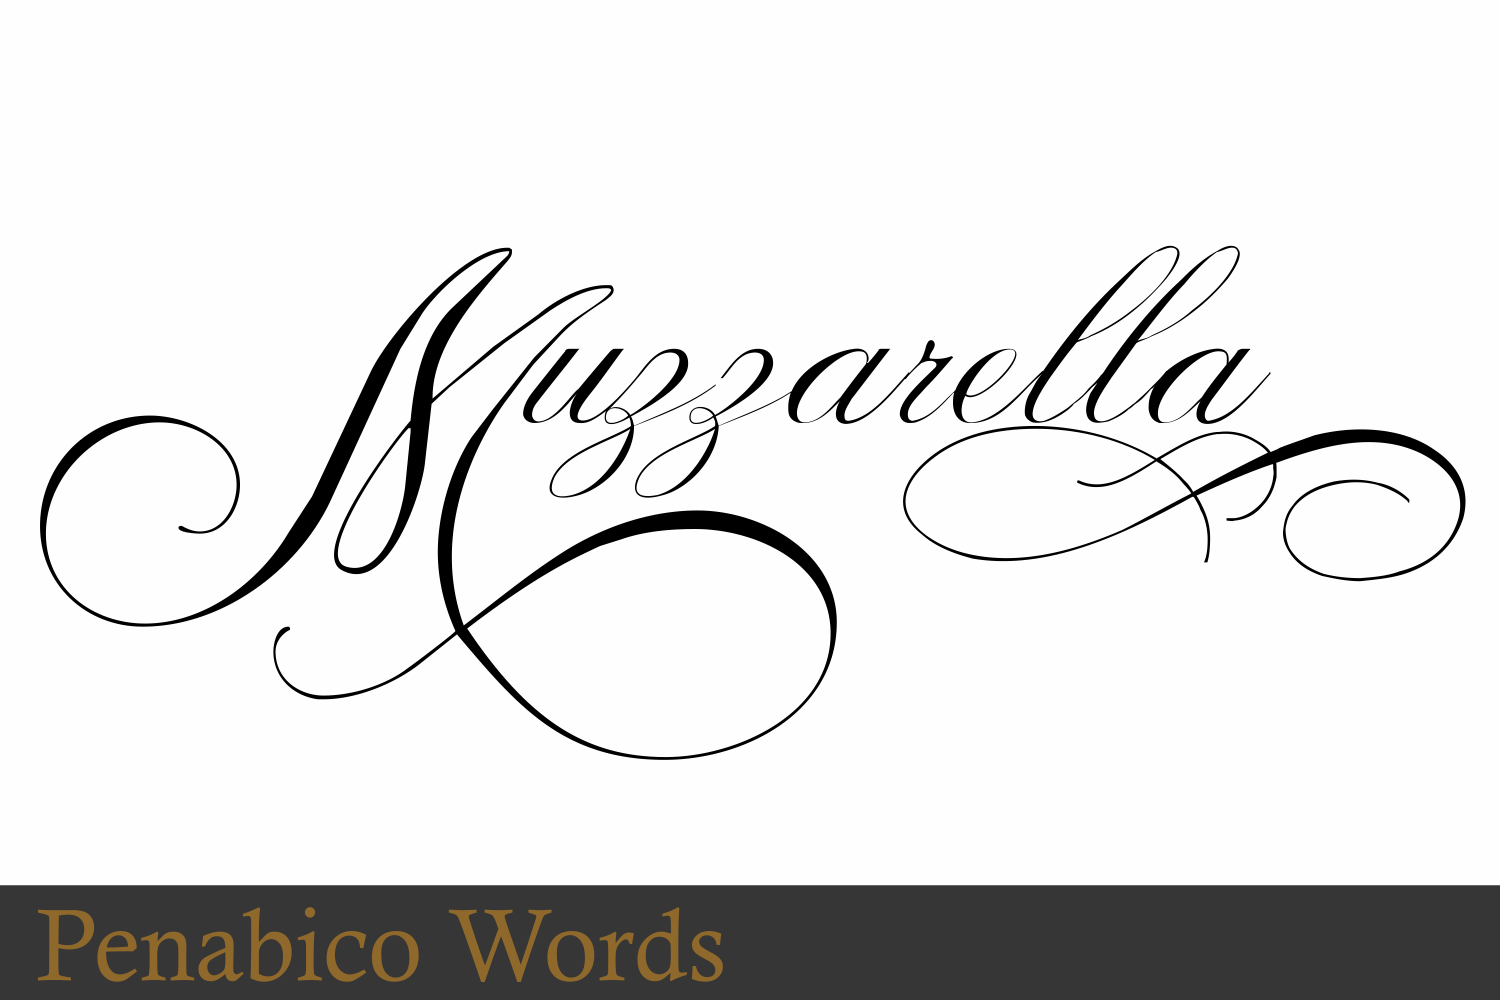 Penabico Words  example image 7